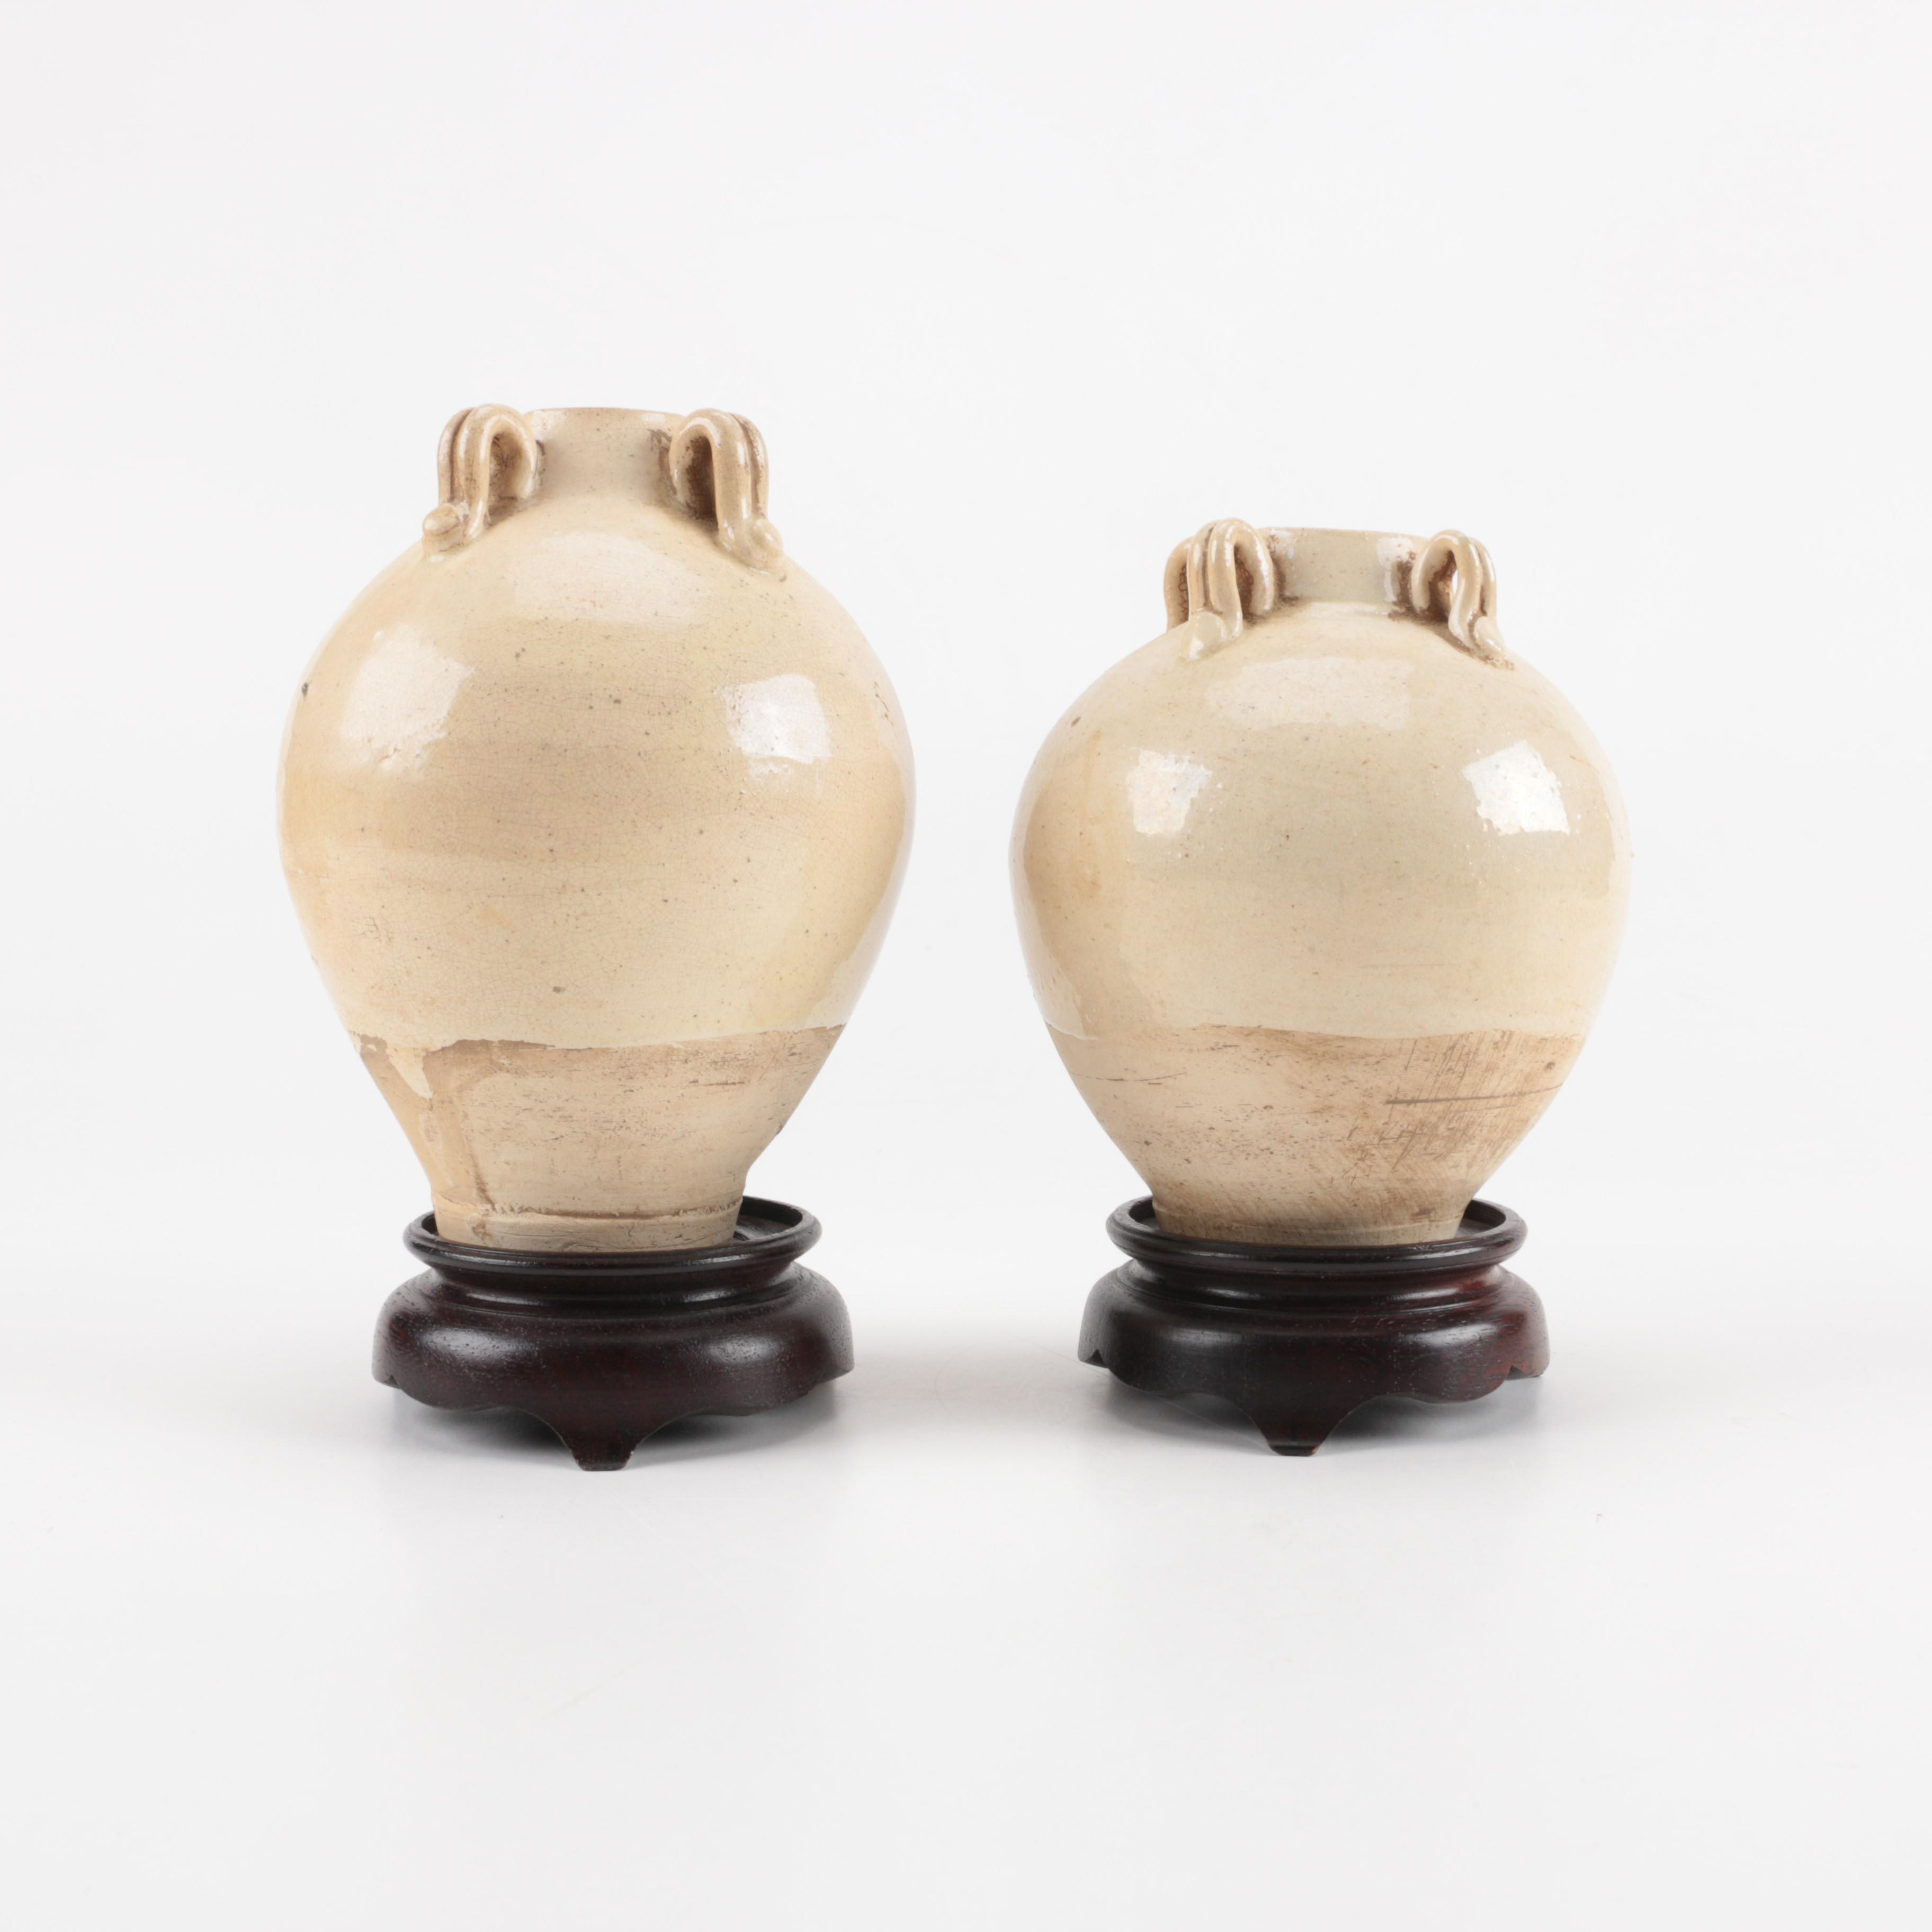 Vintage Chinese Rotund Urn Vases on Wooden Stands